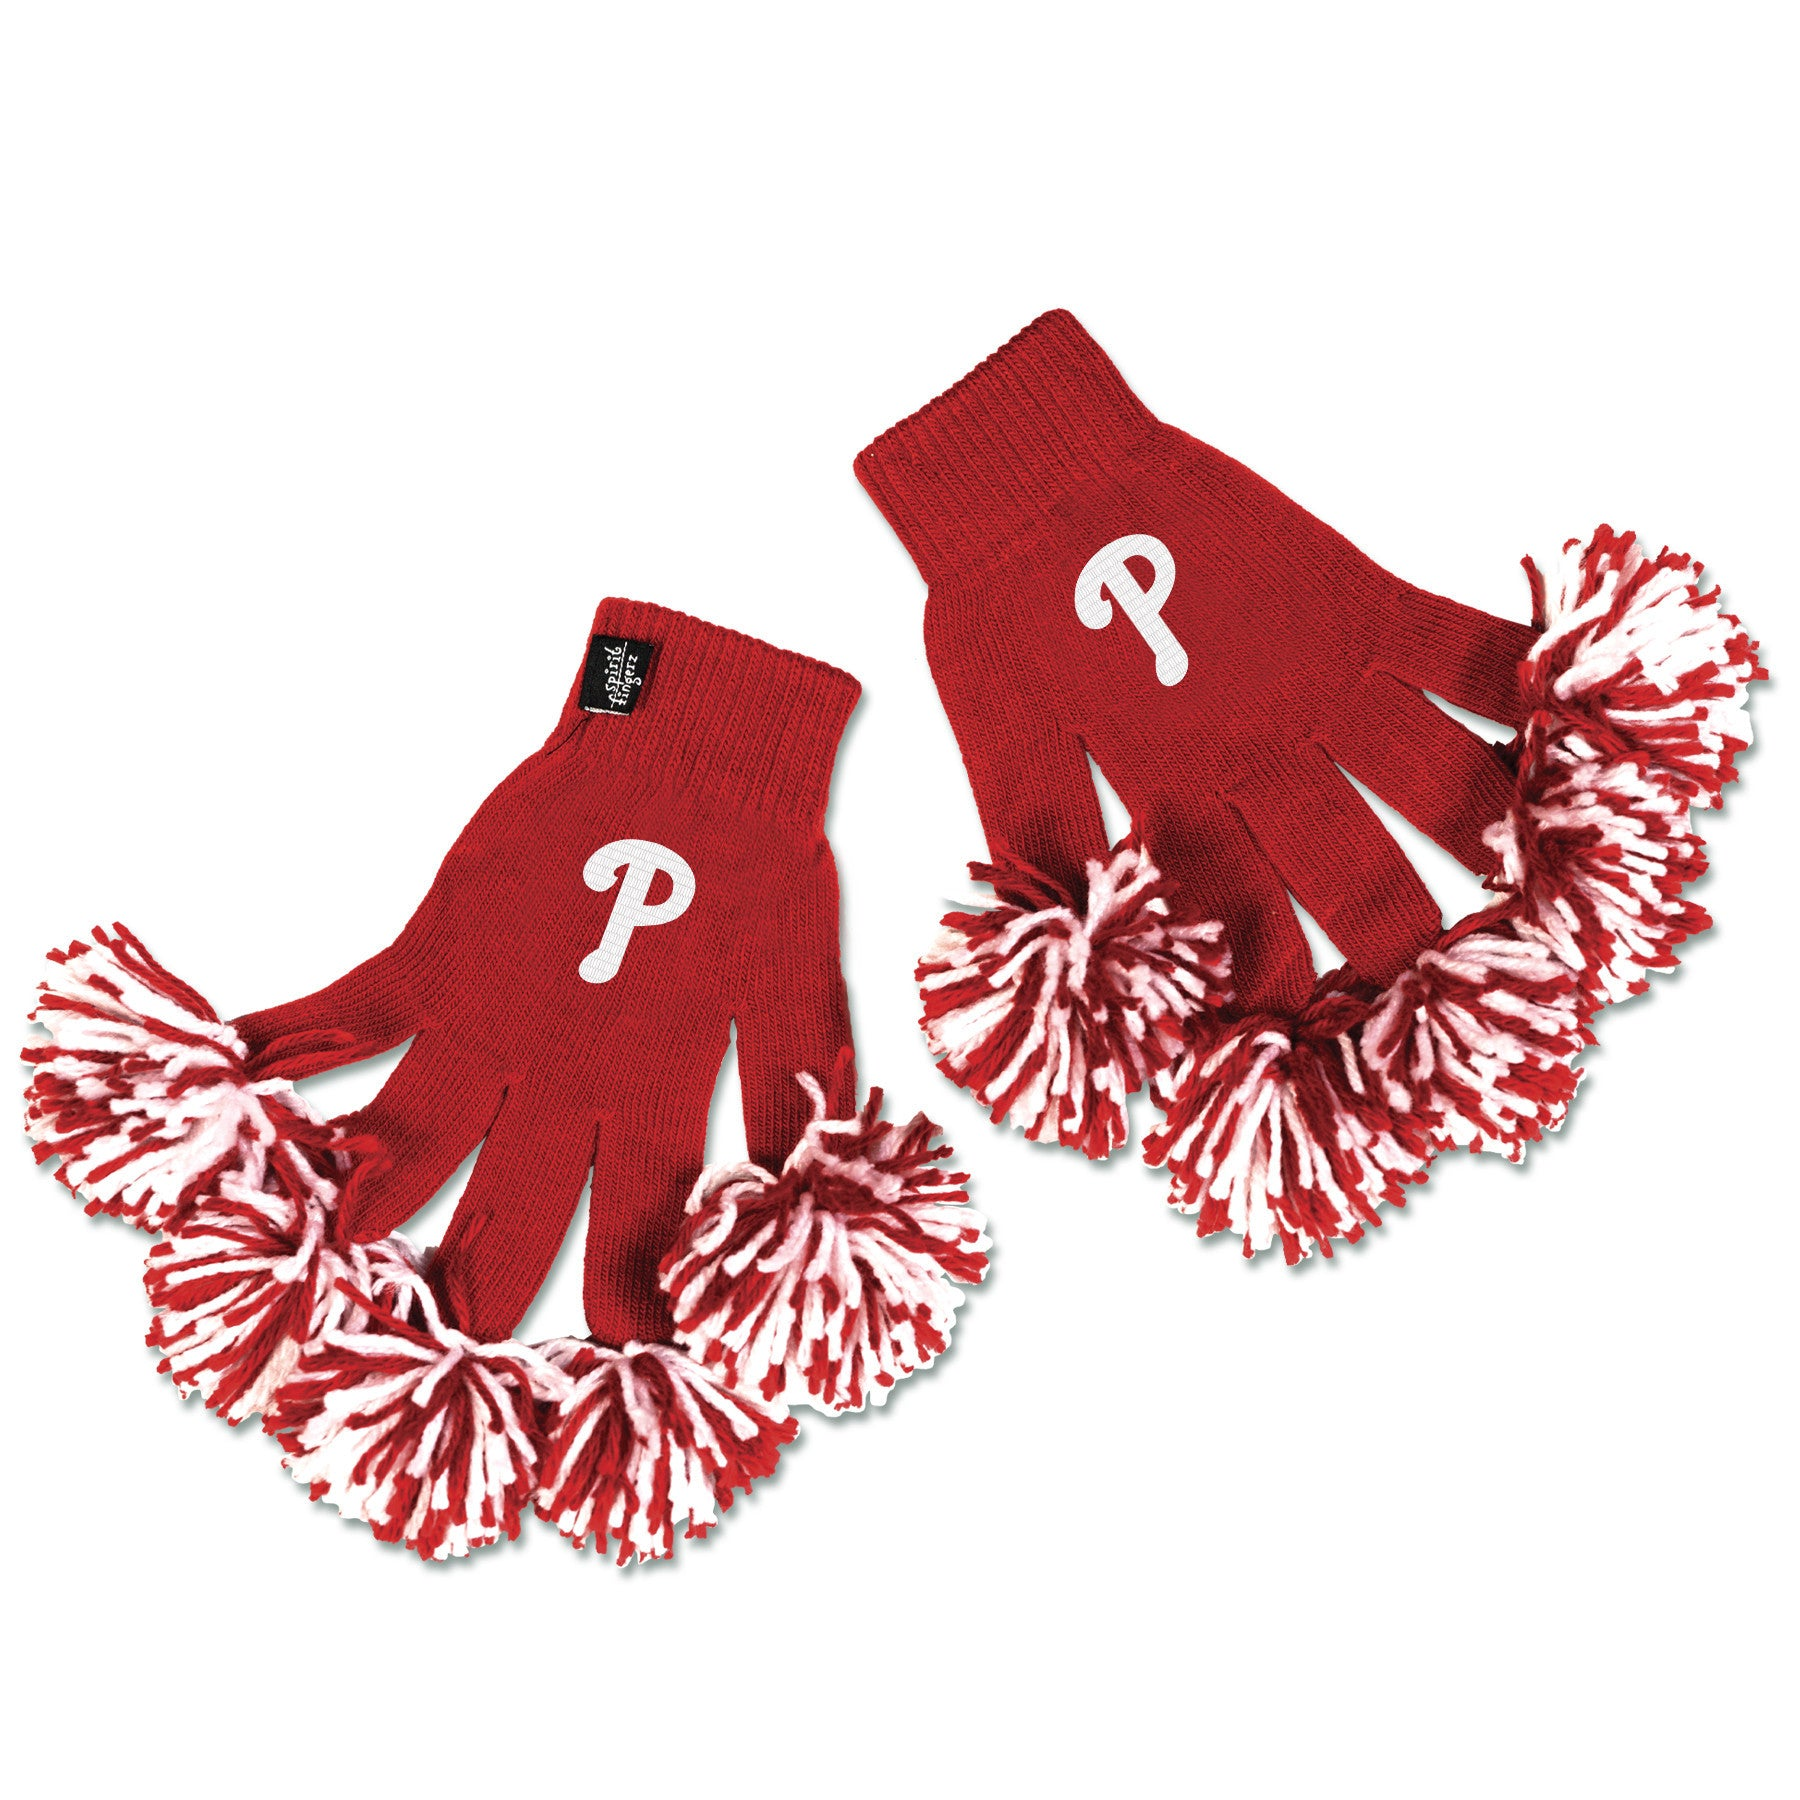 Philadelphia Phillies MLB Spirit Fingerz Cheerleading Pom-Pom Gloves